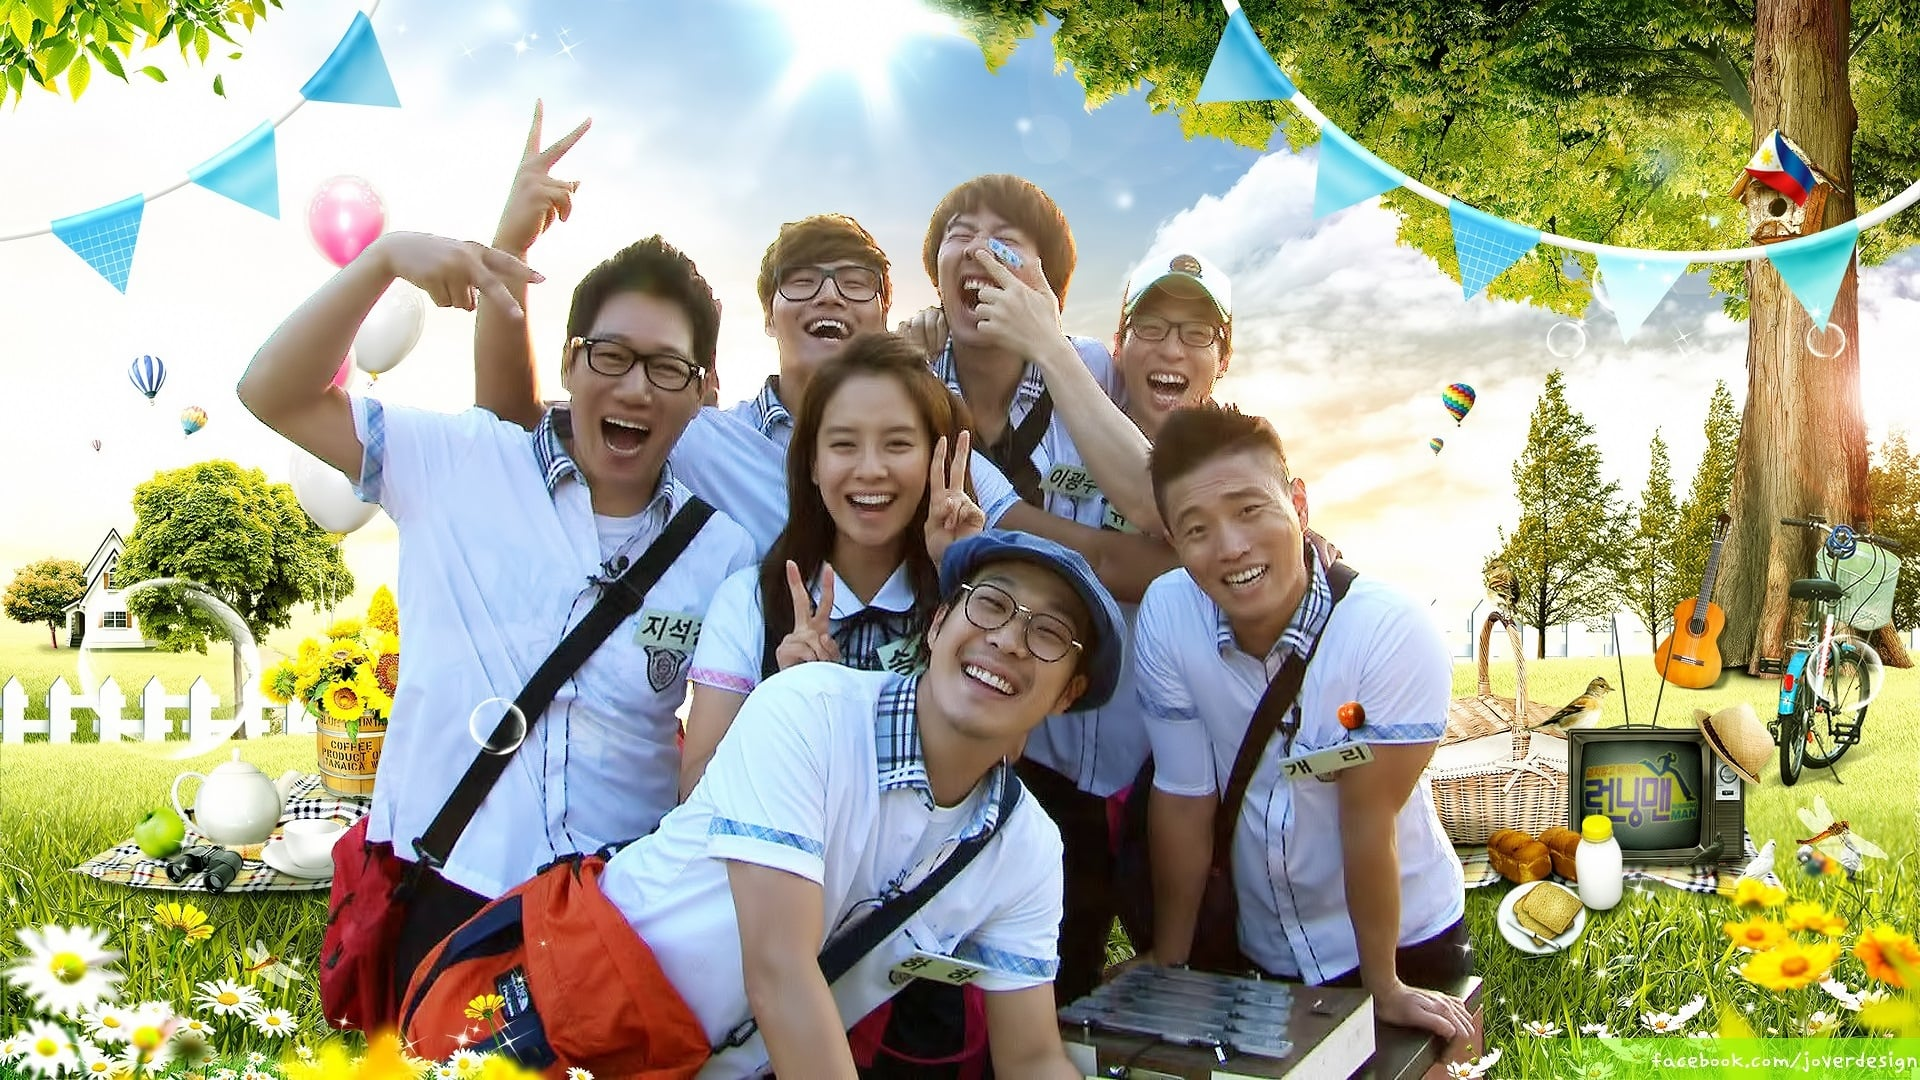 Running Man - Season 1